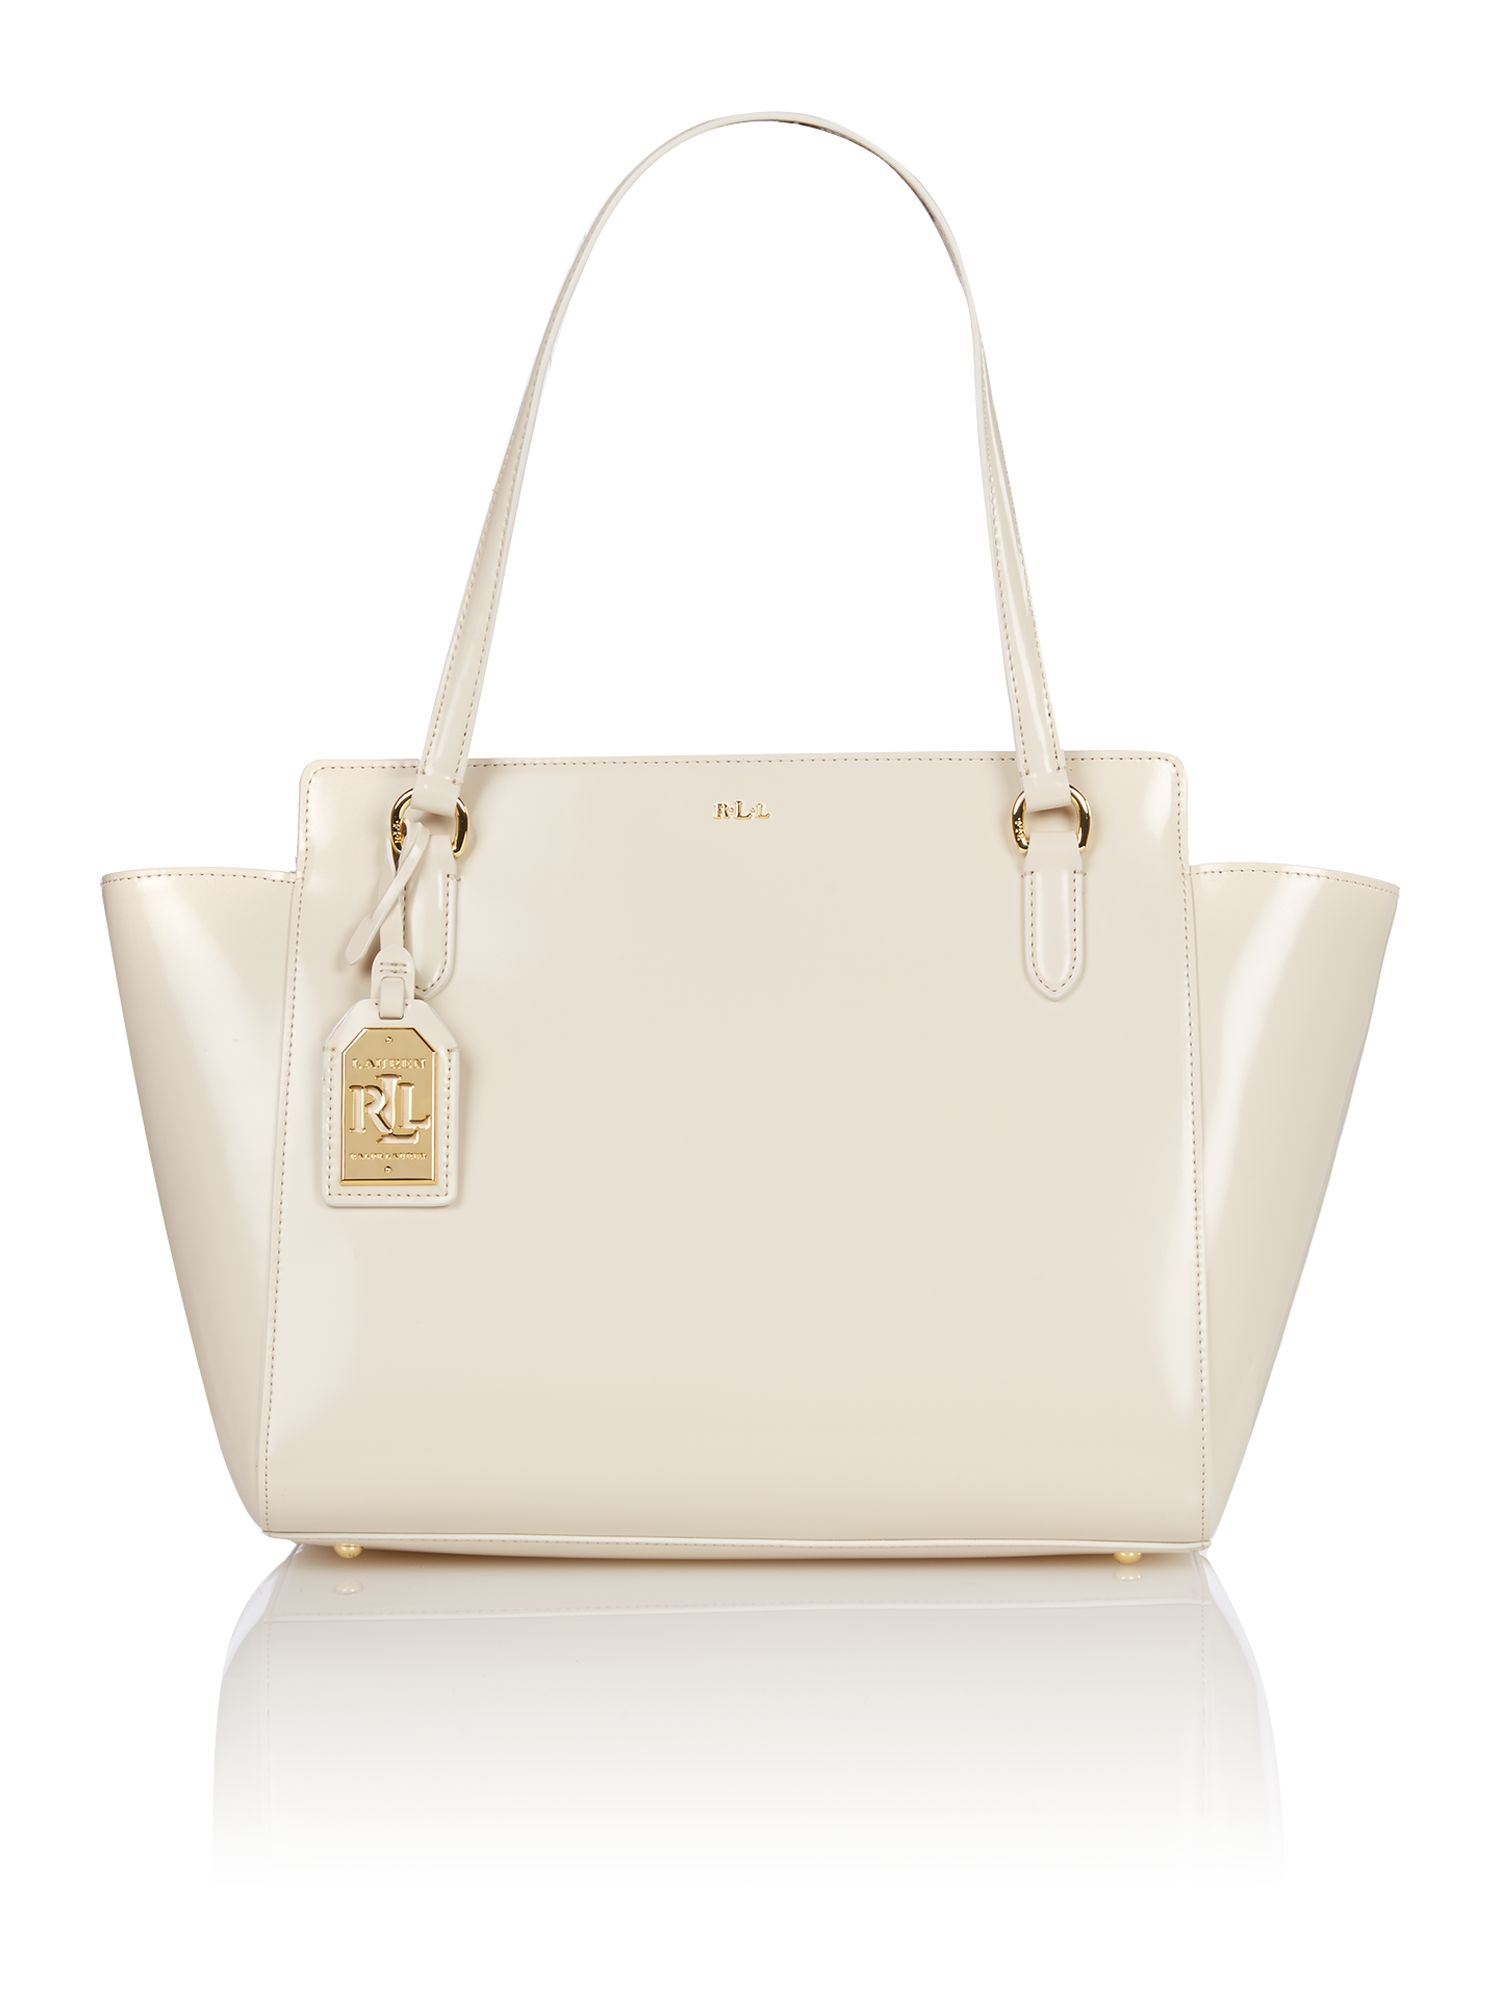 ... denmark lauren by ralph lauren white large taylor tote bag in white  lyst dde6d a1169 437322c3b2a8c